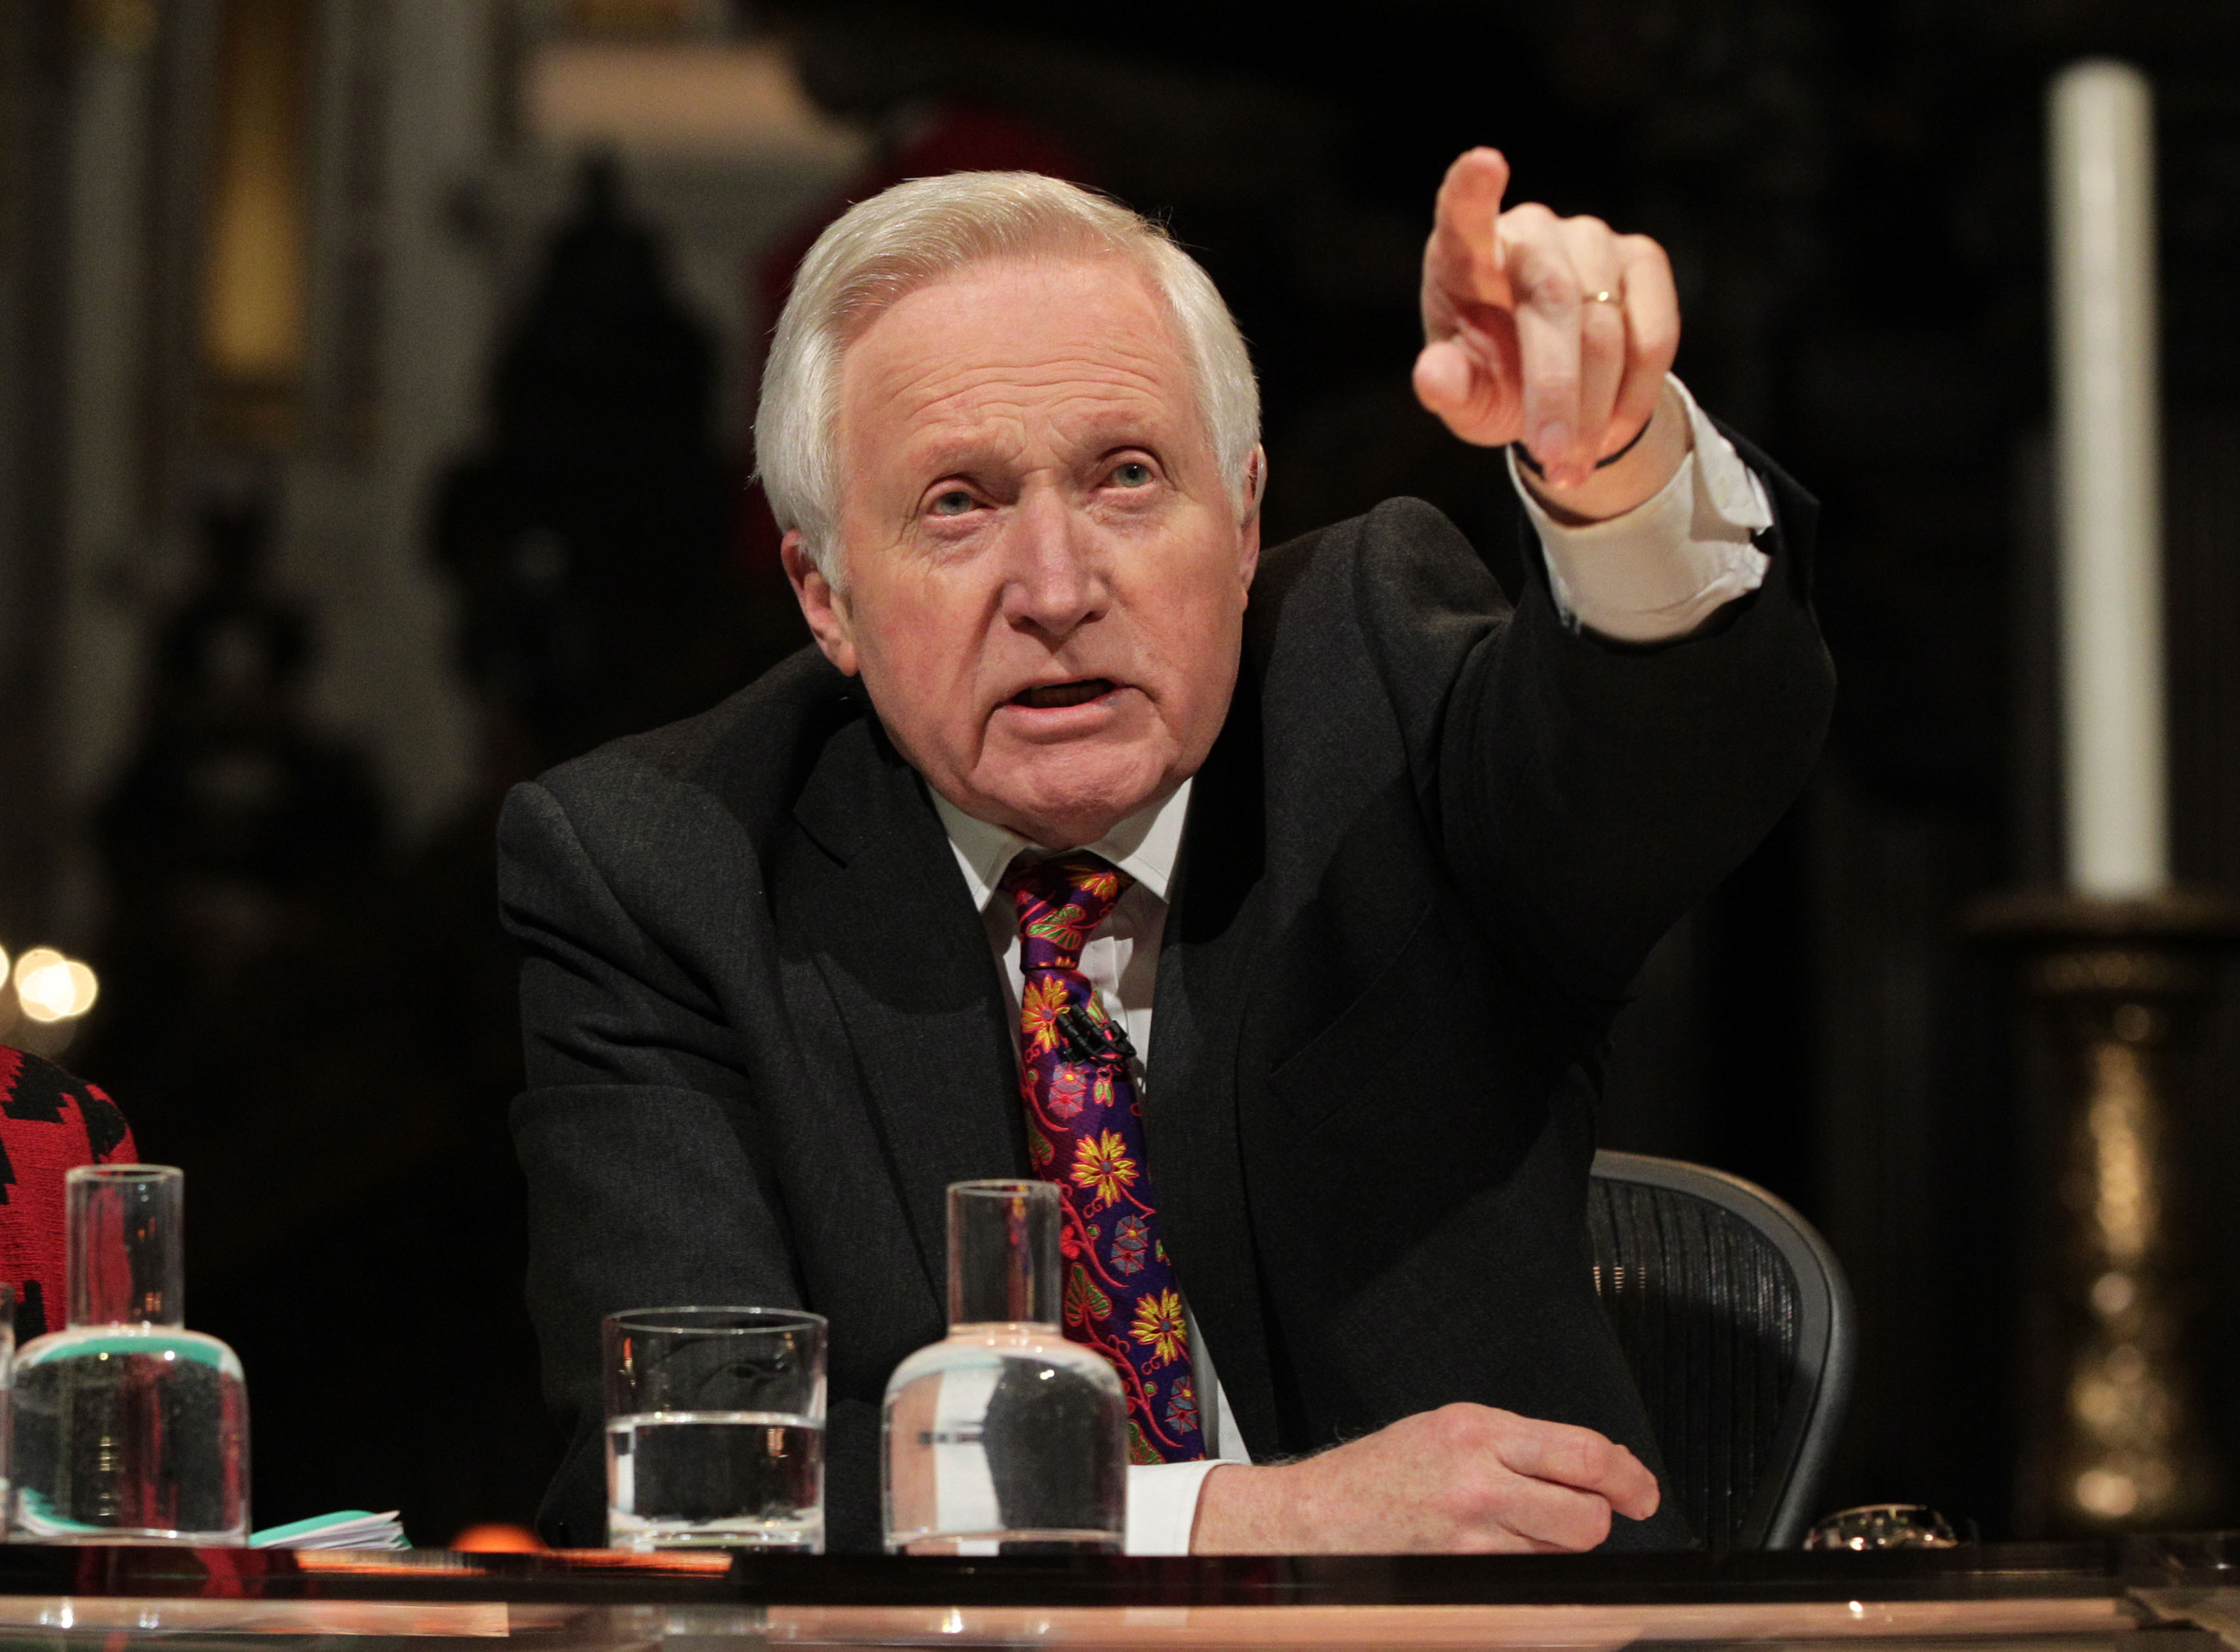 David Dimbleby did not have his salary disclosed in the BBC annual report.